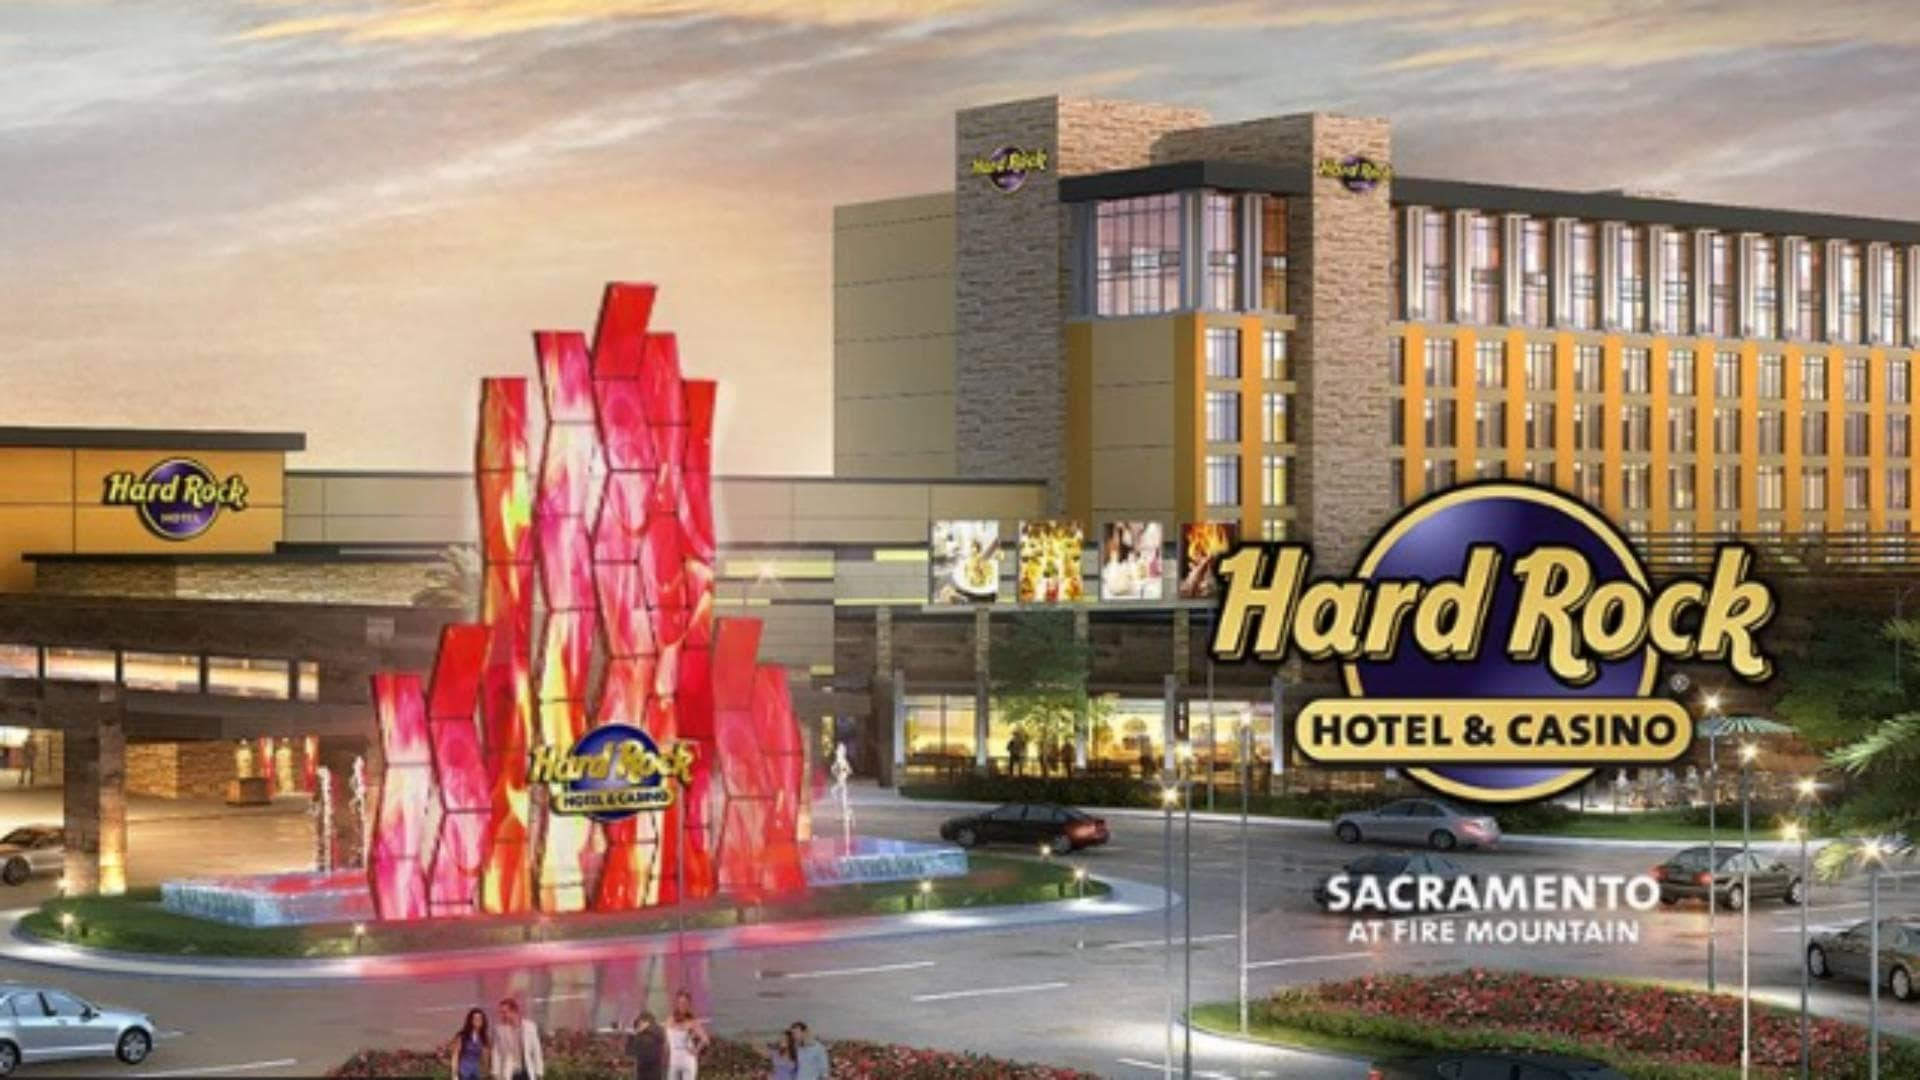 Hard Rock Hotel & Casino Sacramento at Fire Mountain